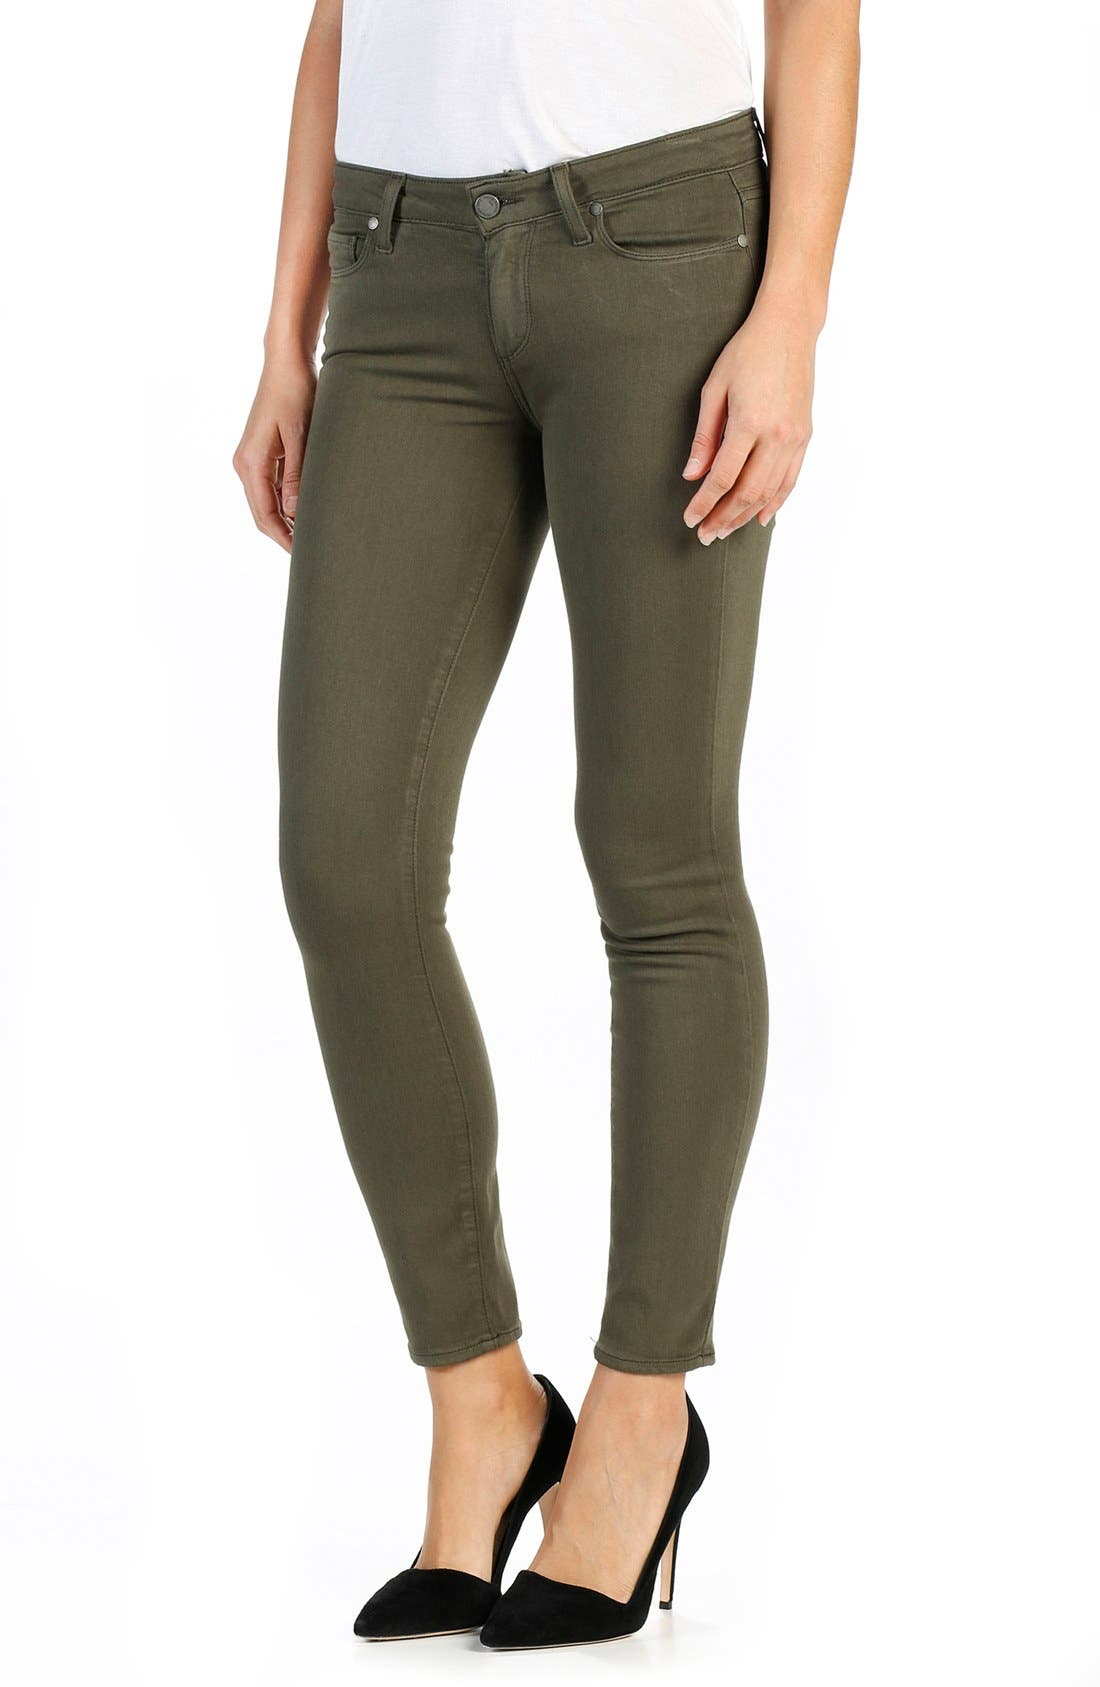 Alternate Image 1 Selected - PAIGE Transcend Verdugo Ankle Ultra Skinny Jeans (Olive Leaf)